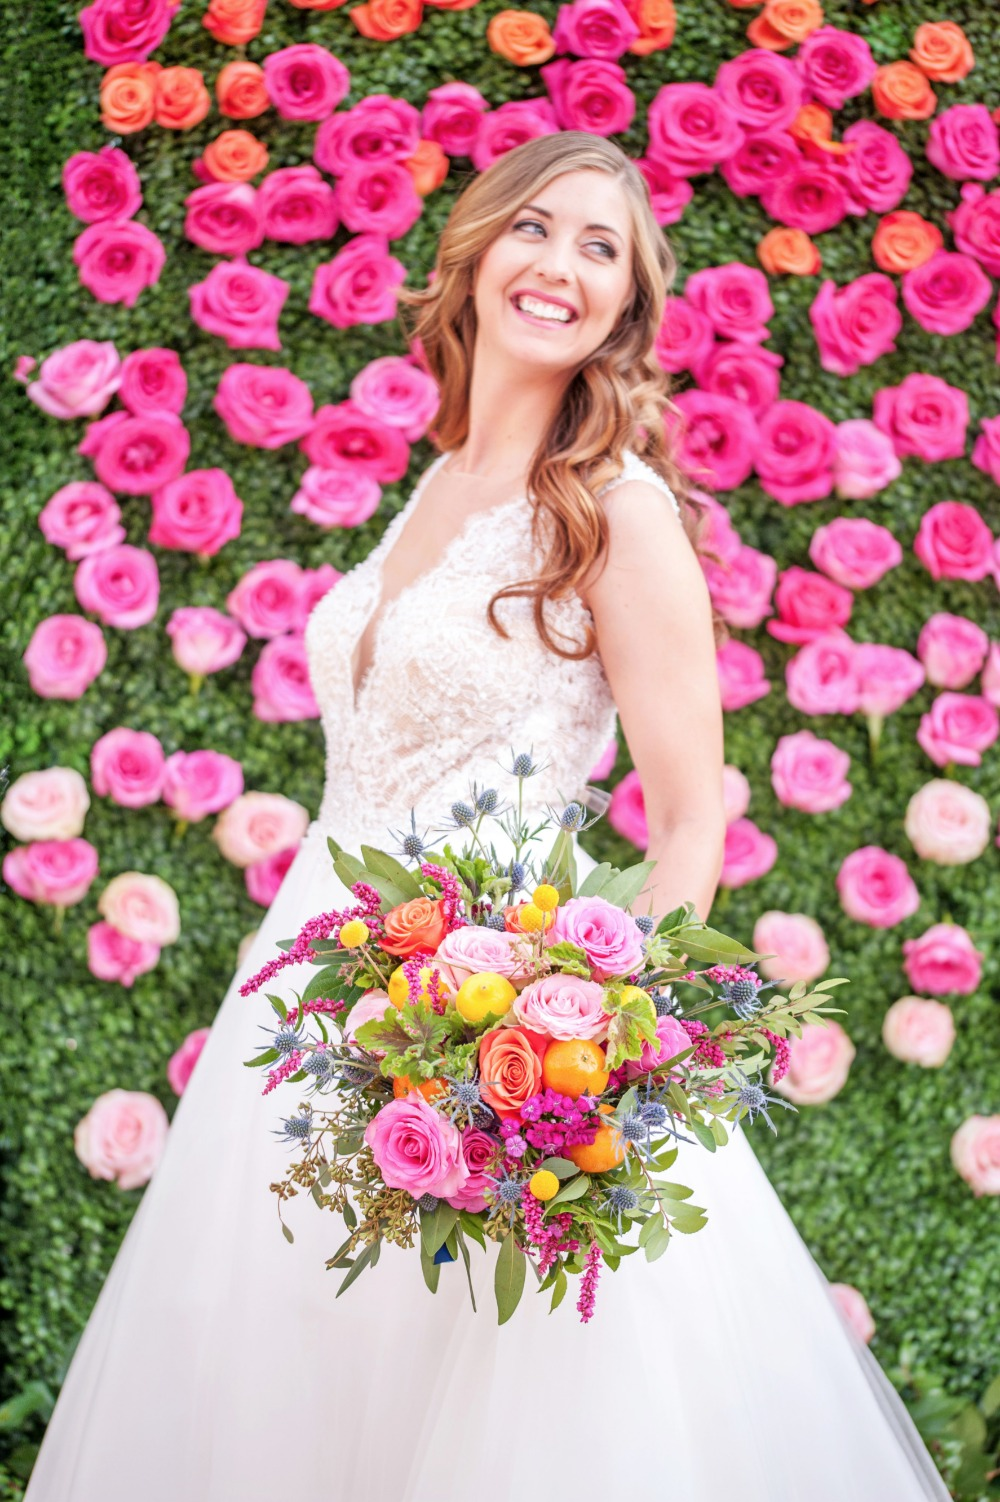 Beautiful bride and bouquet